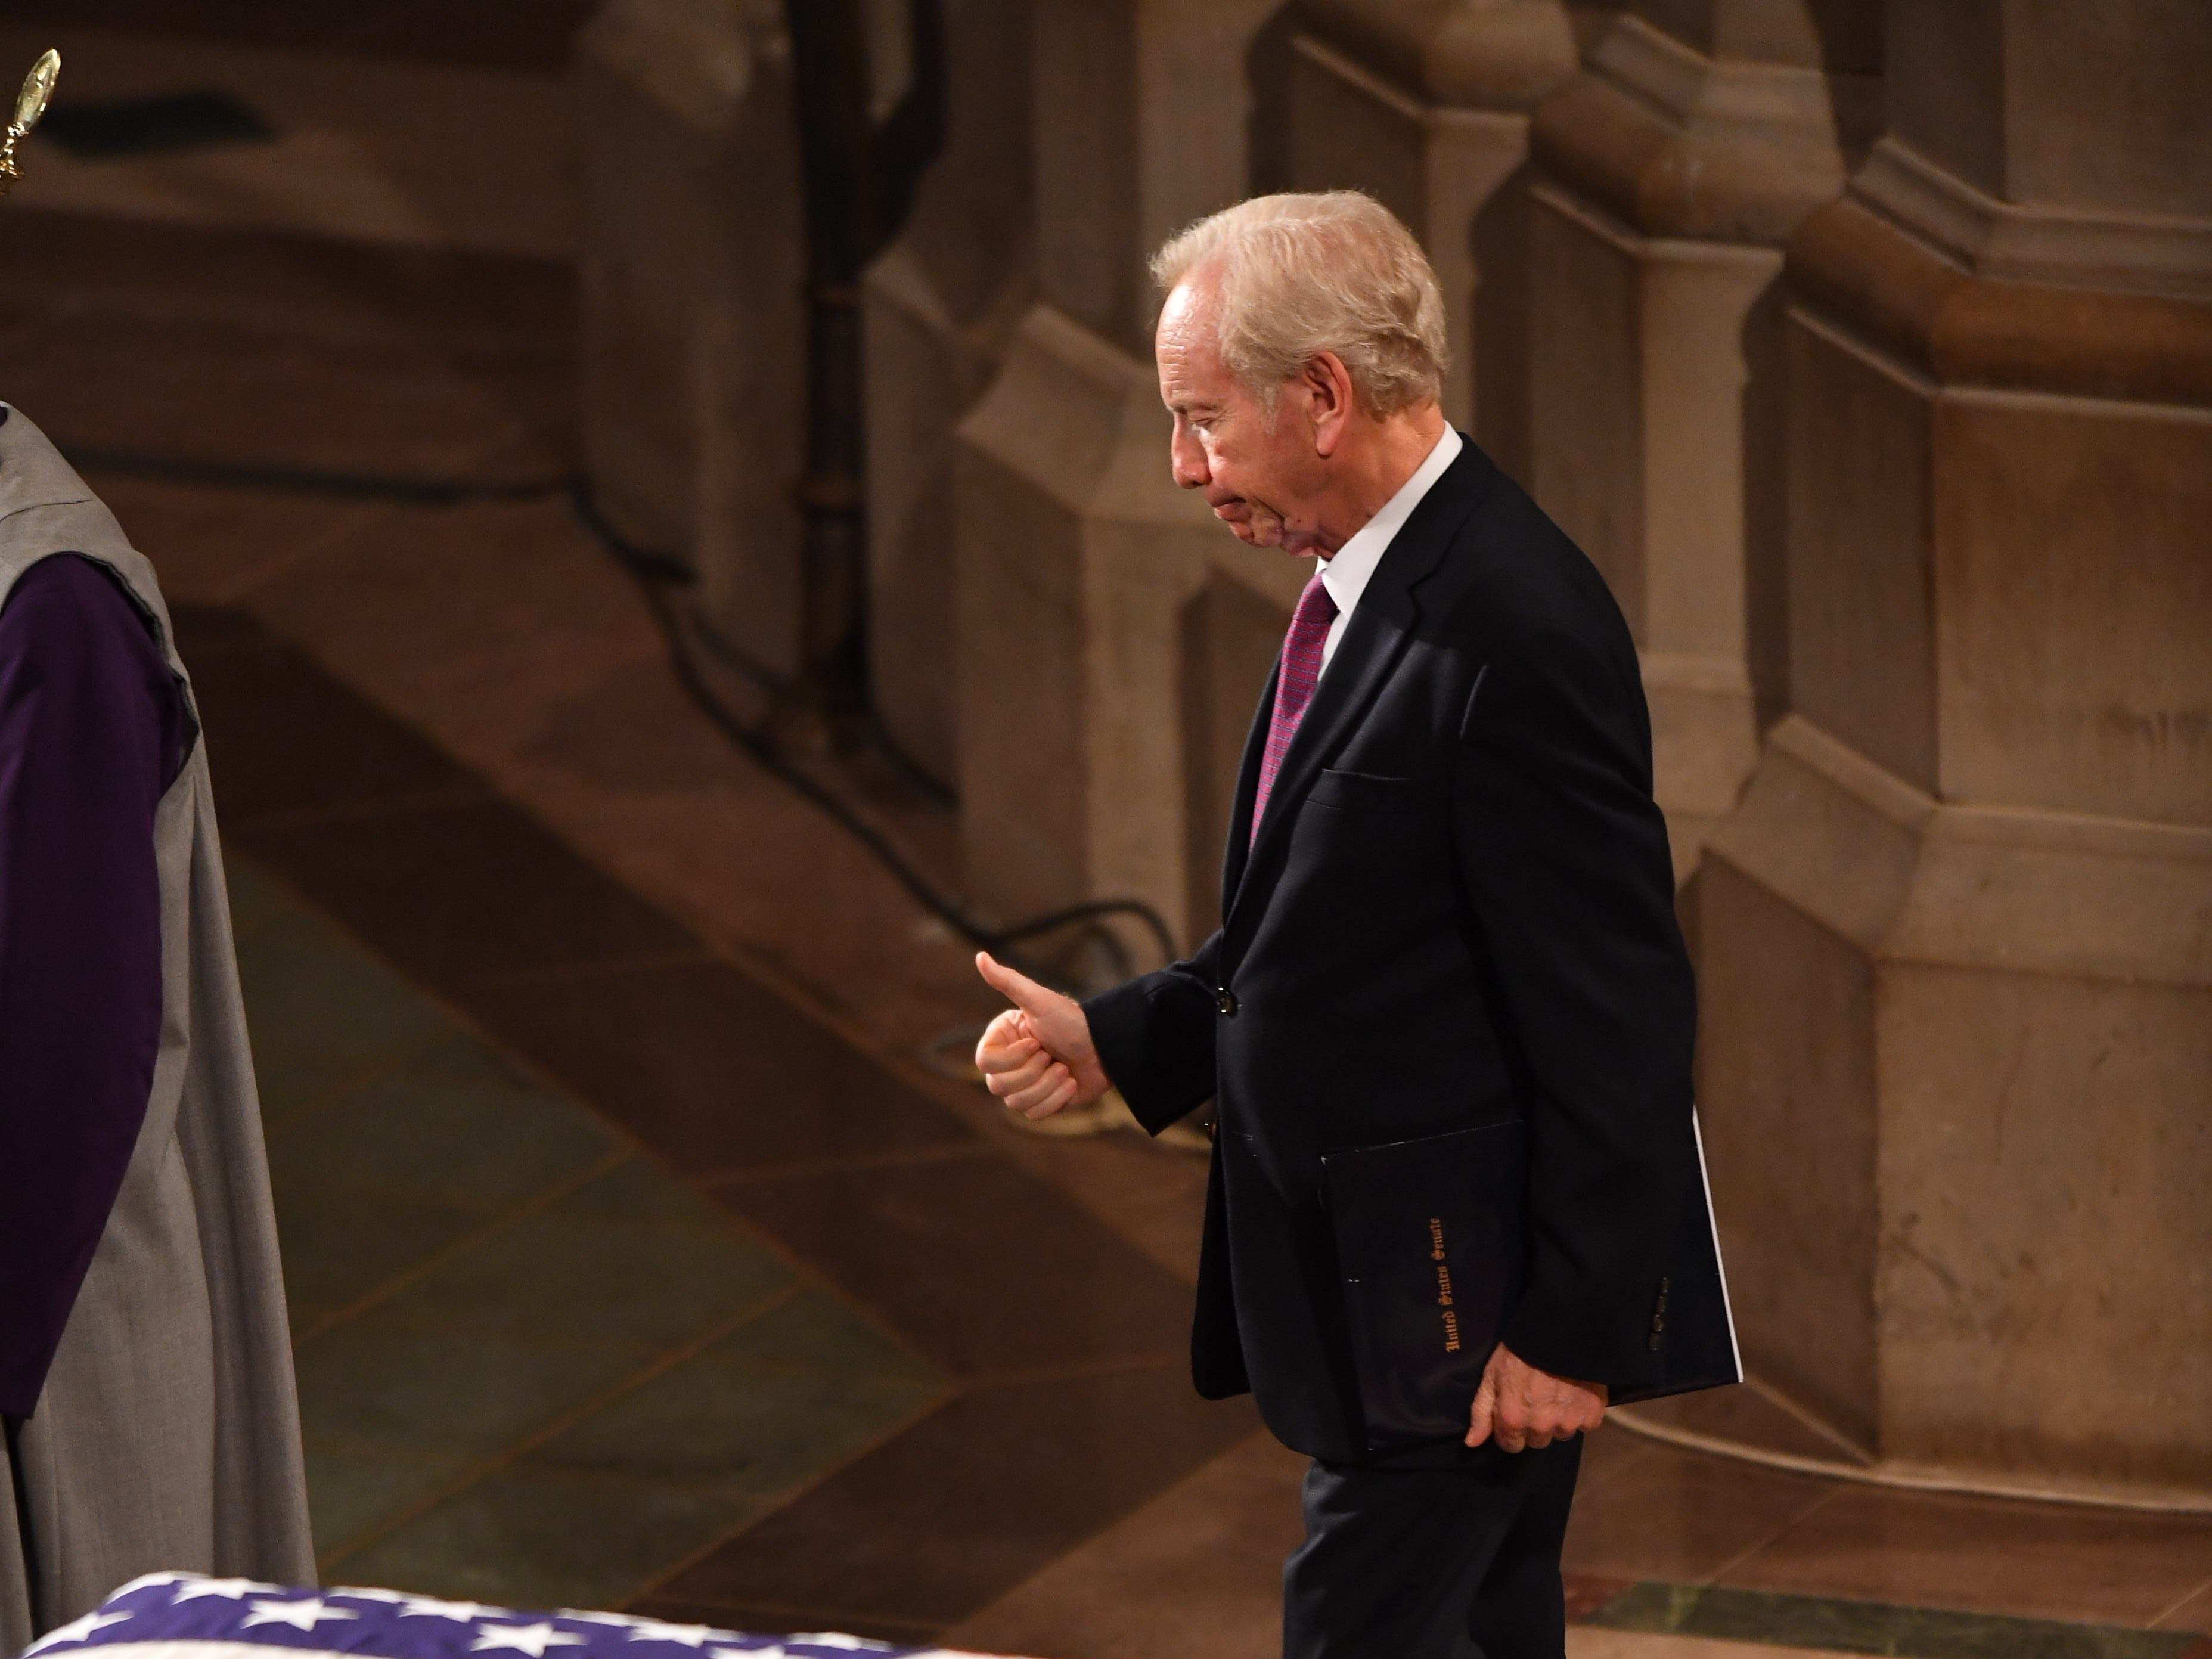 Joe Lieberman gives the 'thumbs up' at the memorial service for his friend John McCain at the National Cathedral.